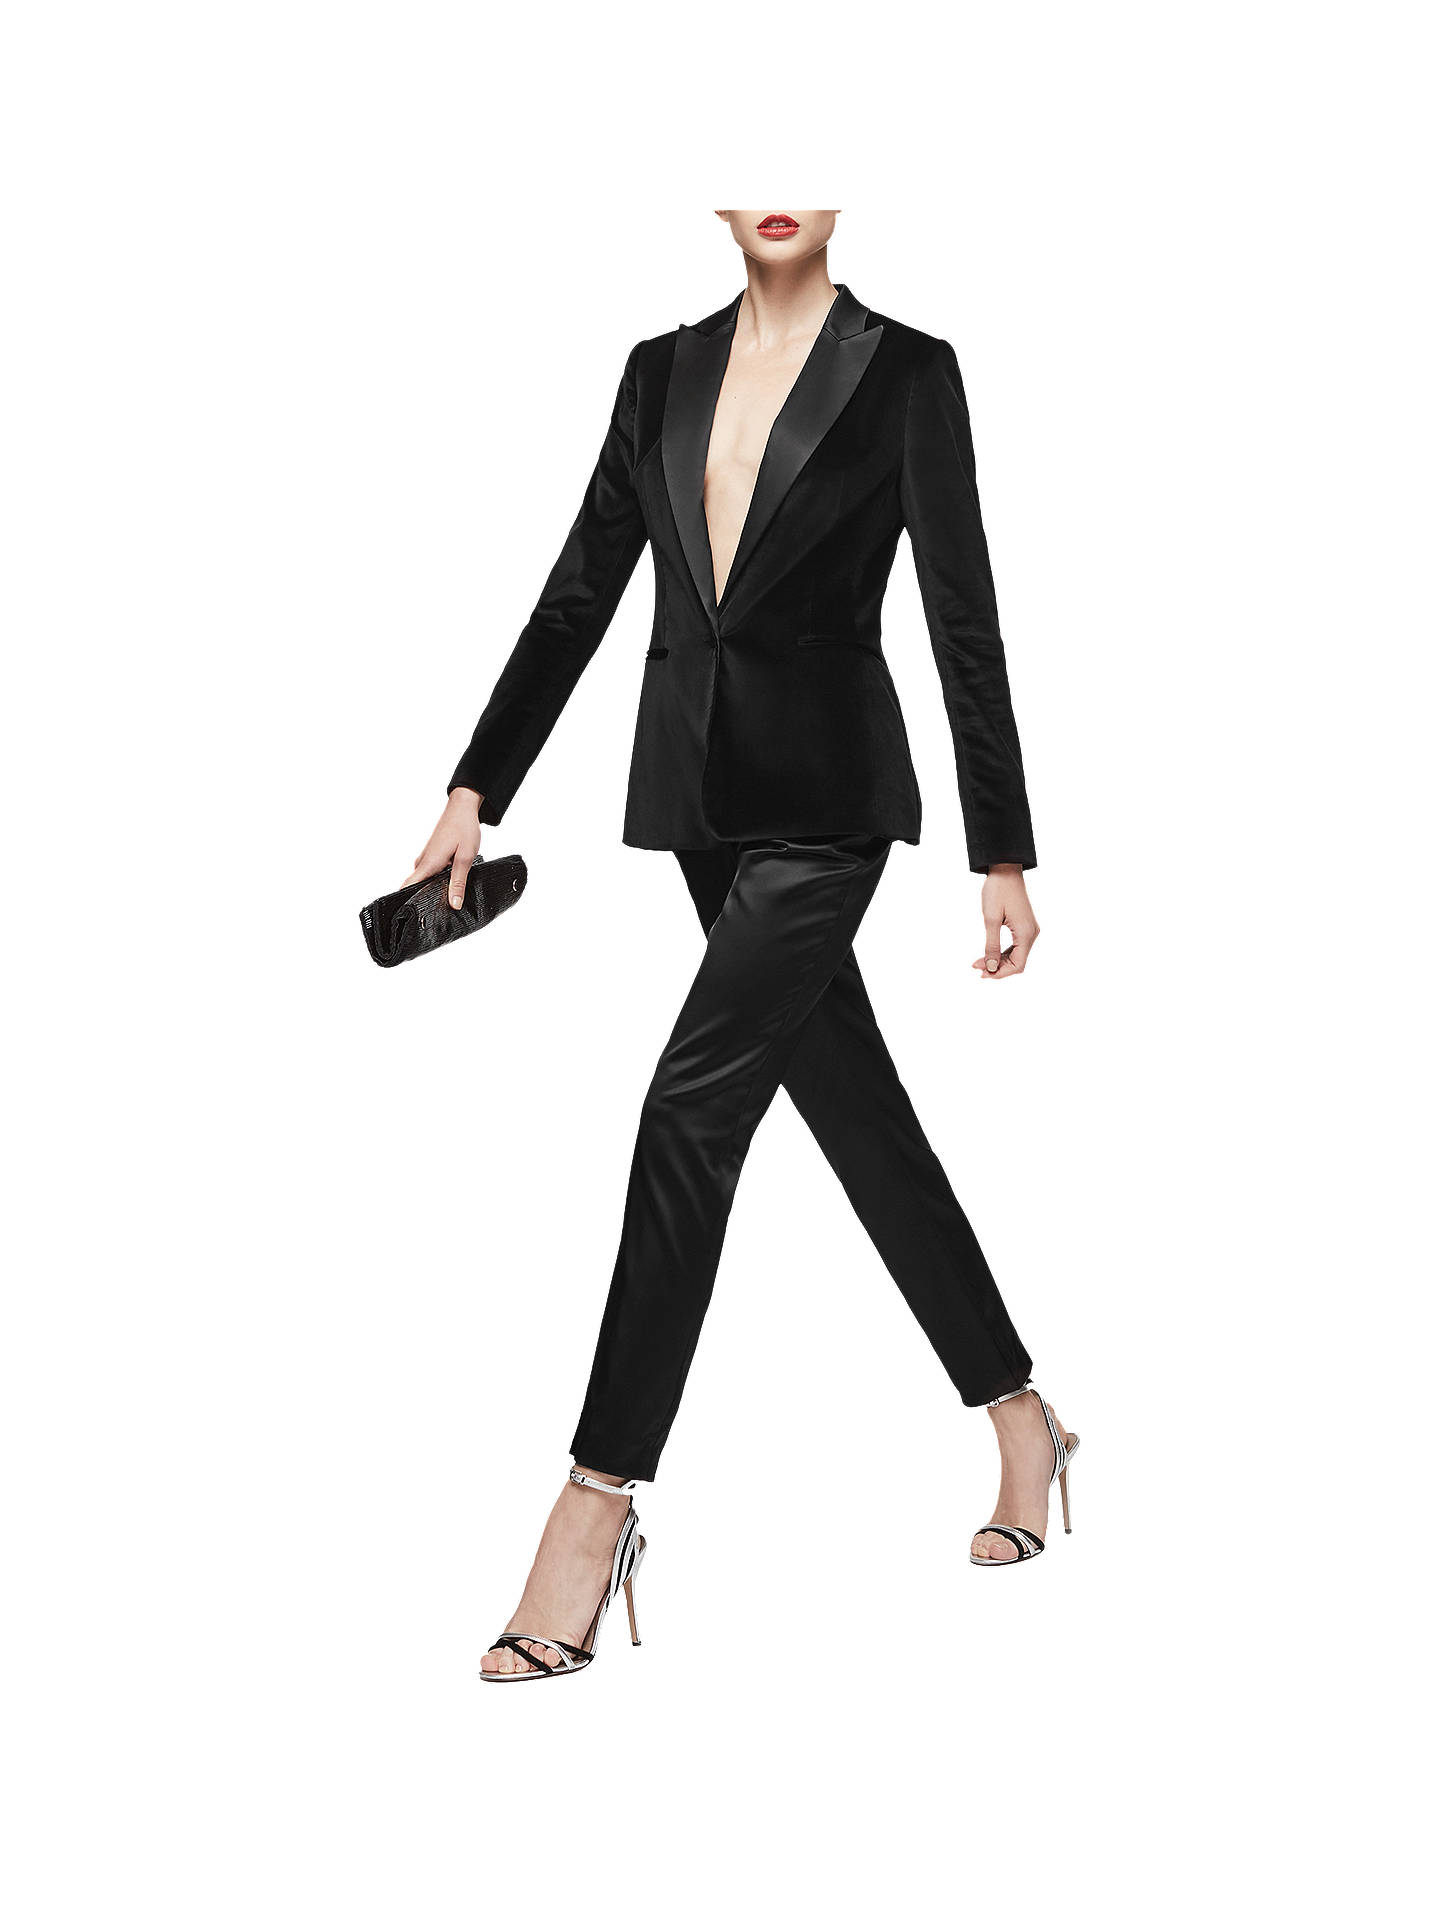 64cc22674 ... Buy Reiss Beth Satin Cigarette Trousers, Black, 6 Online at  johnlewis.com